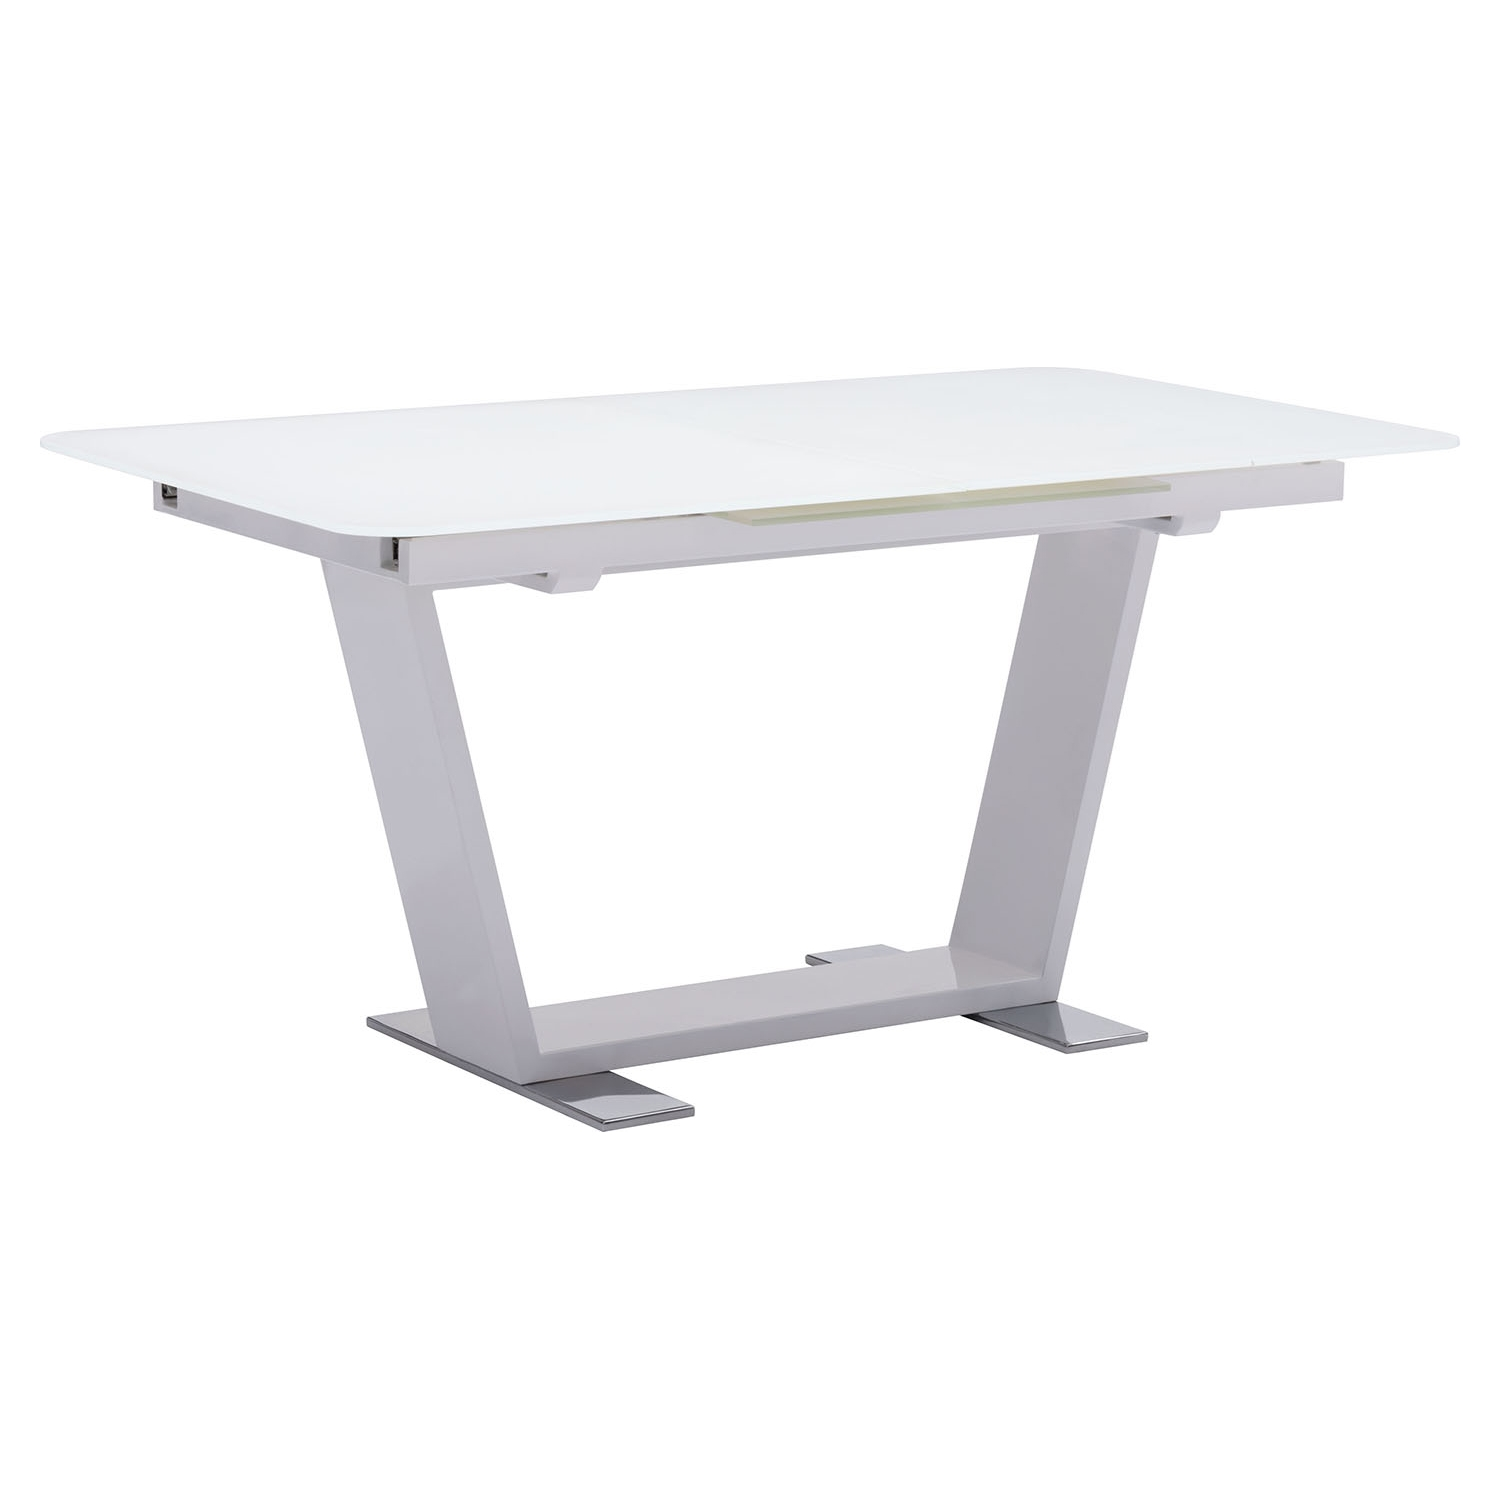 St Charles Extension Dining Table - White - ZM-102130